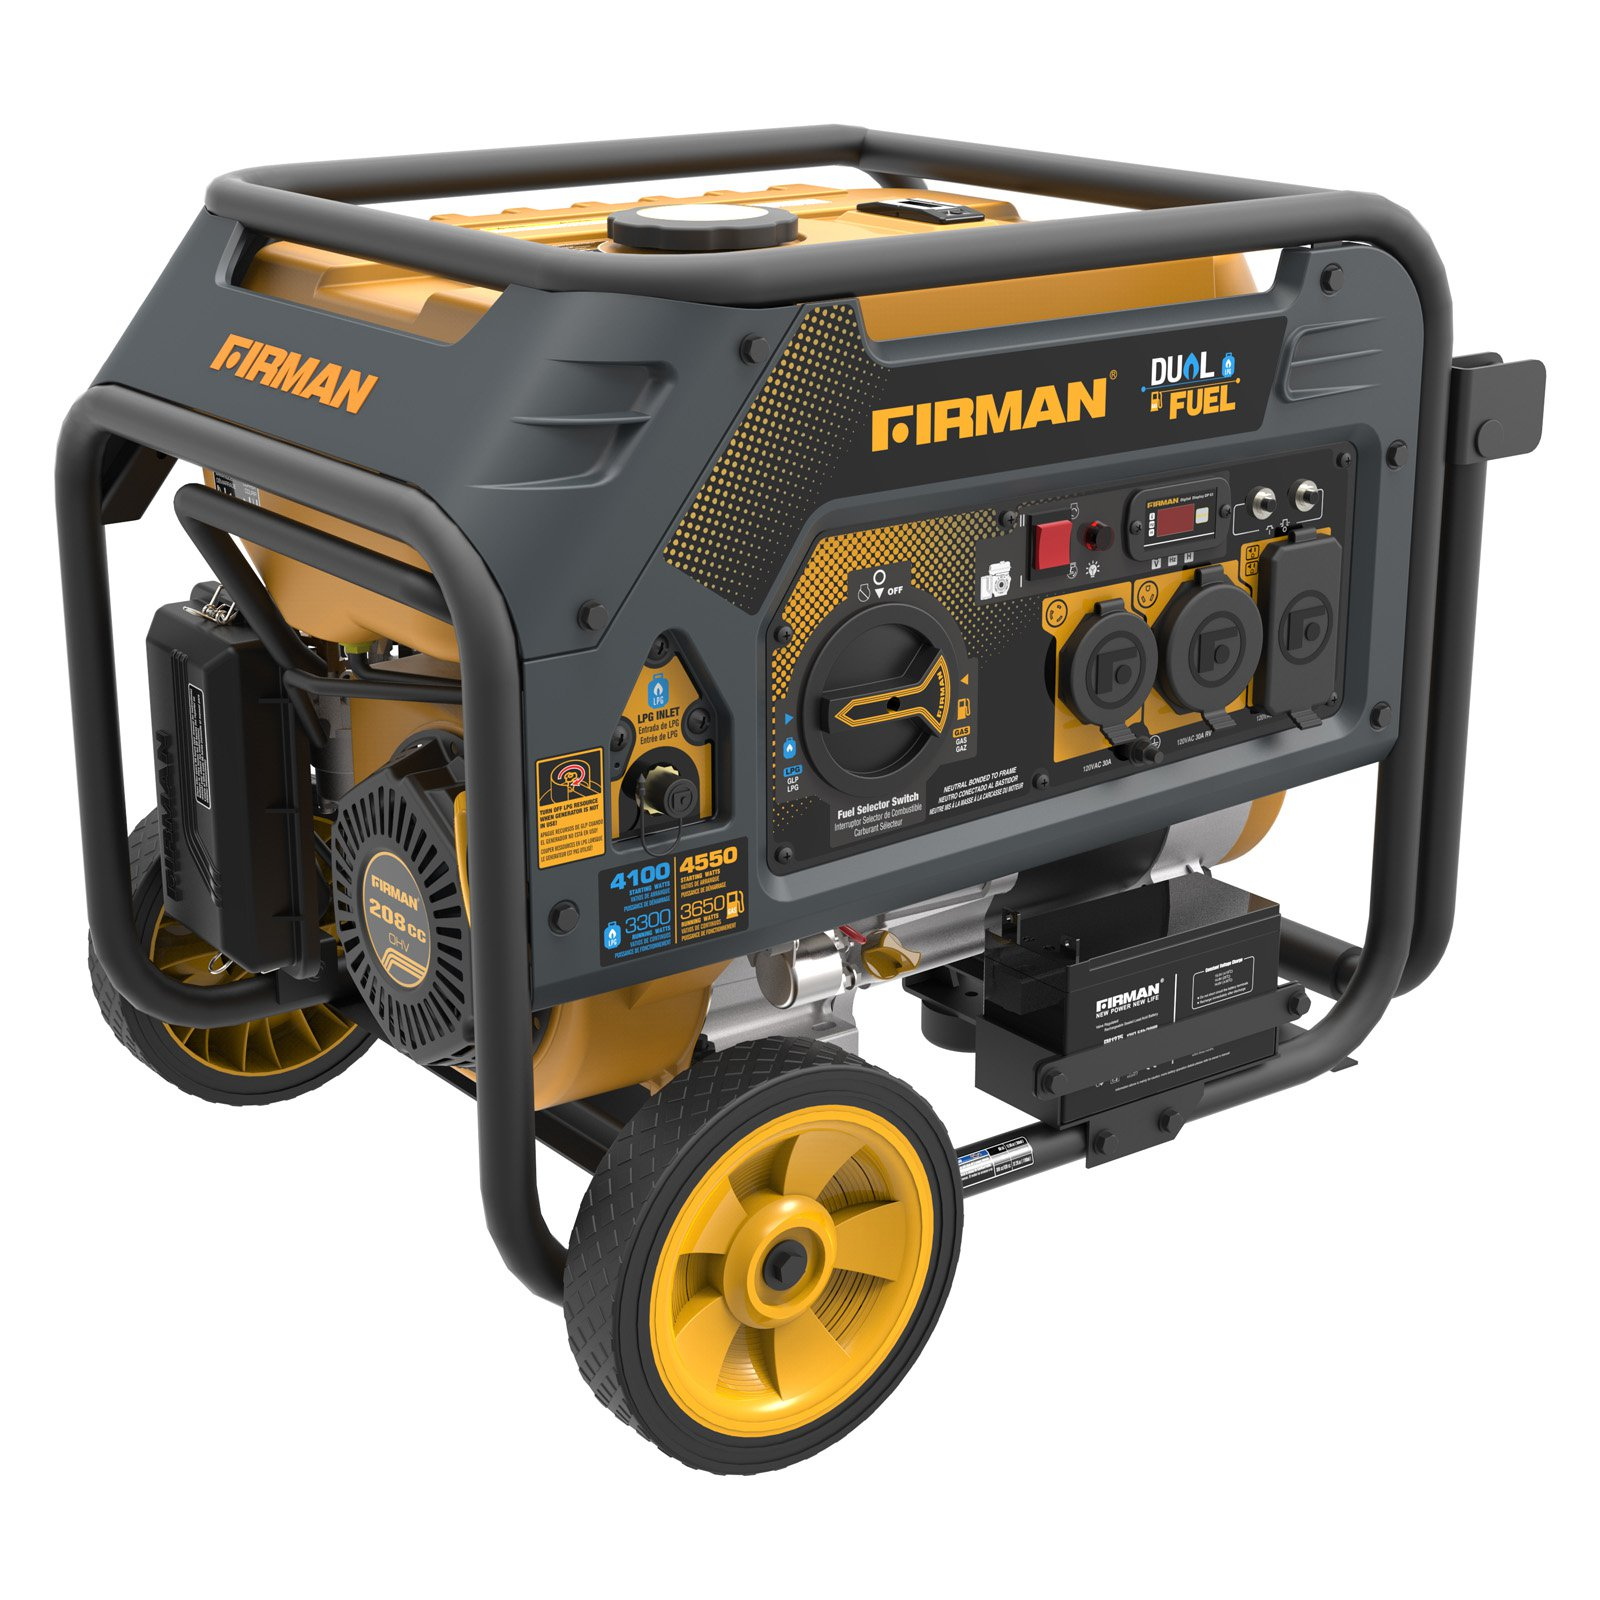 FIRMAN 4550/3650 Watt Electric Start Gas or Propane Dual Fuel Portable Generator CARB and cETL Certified